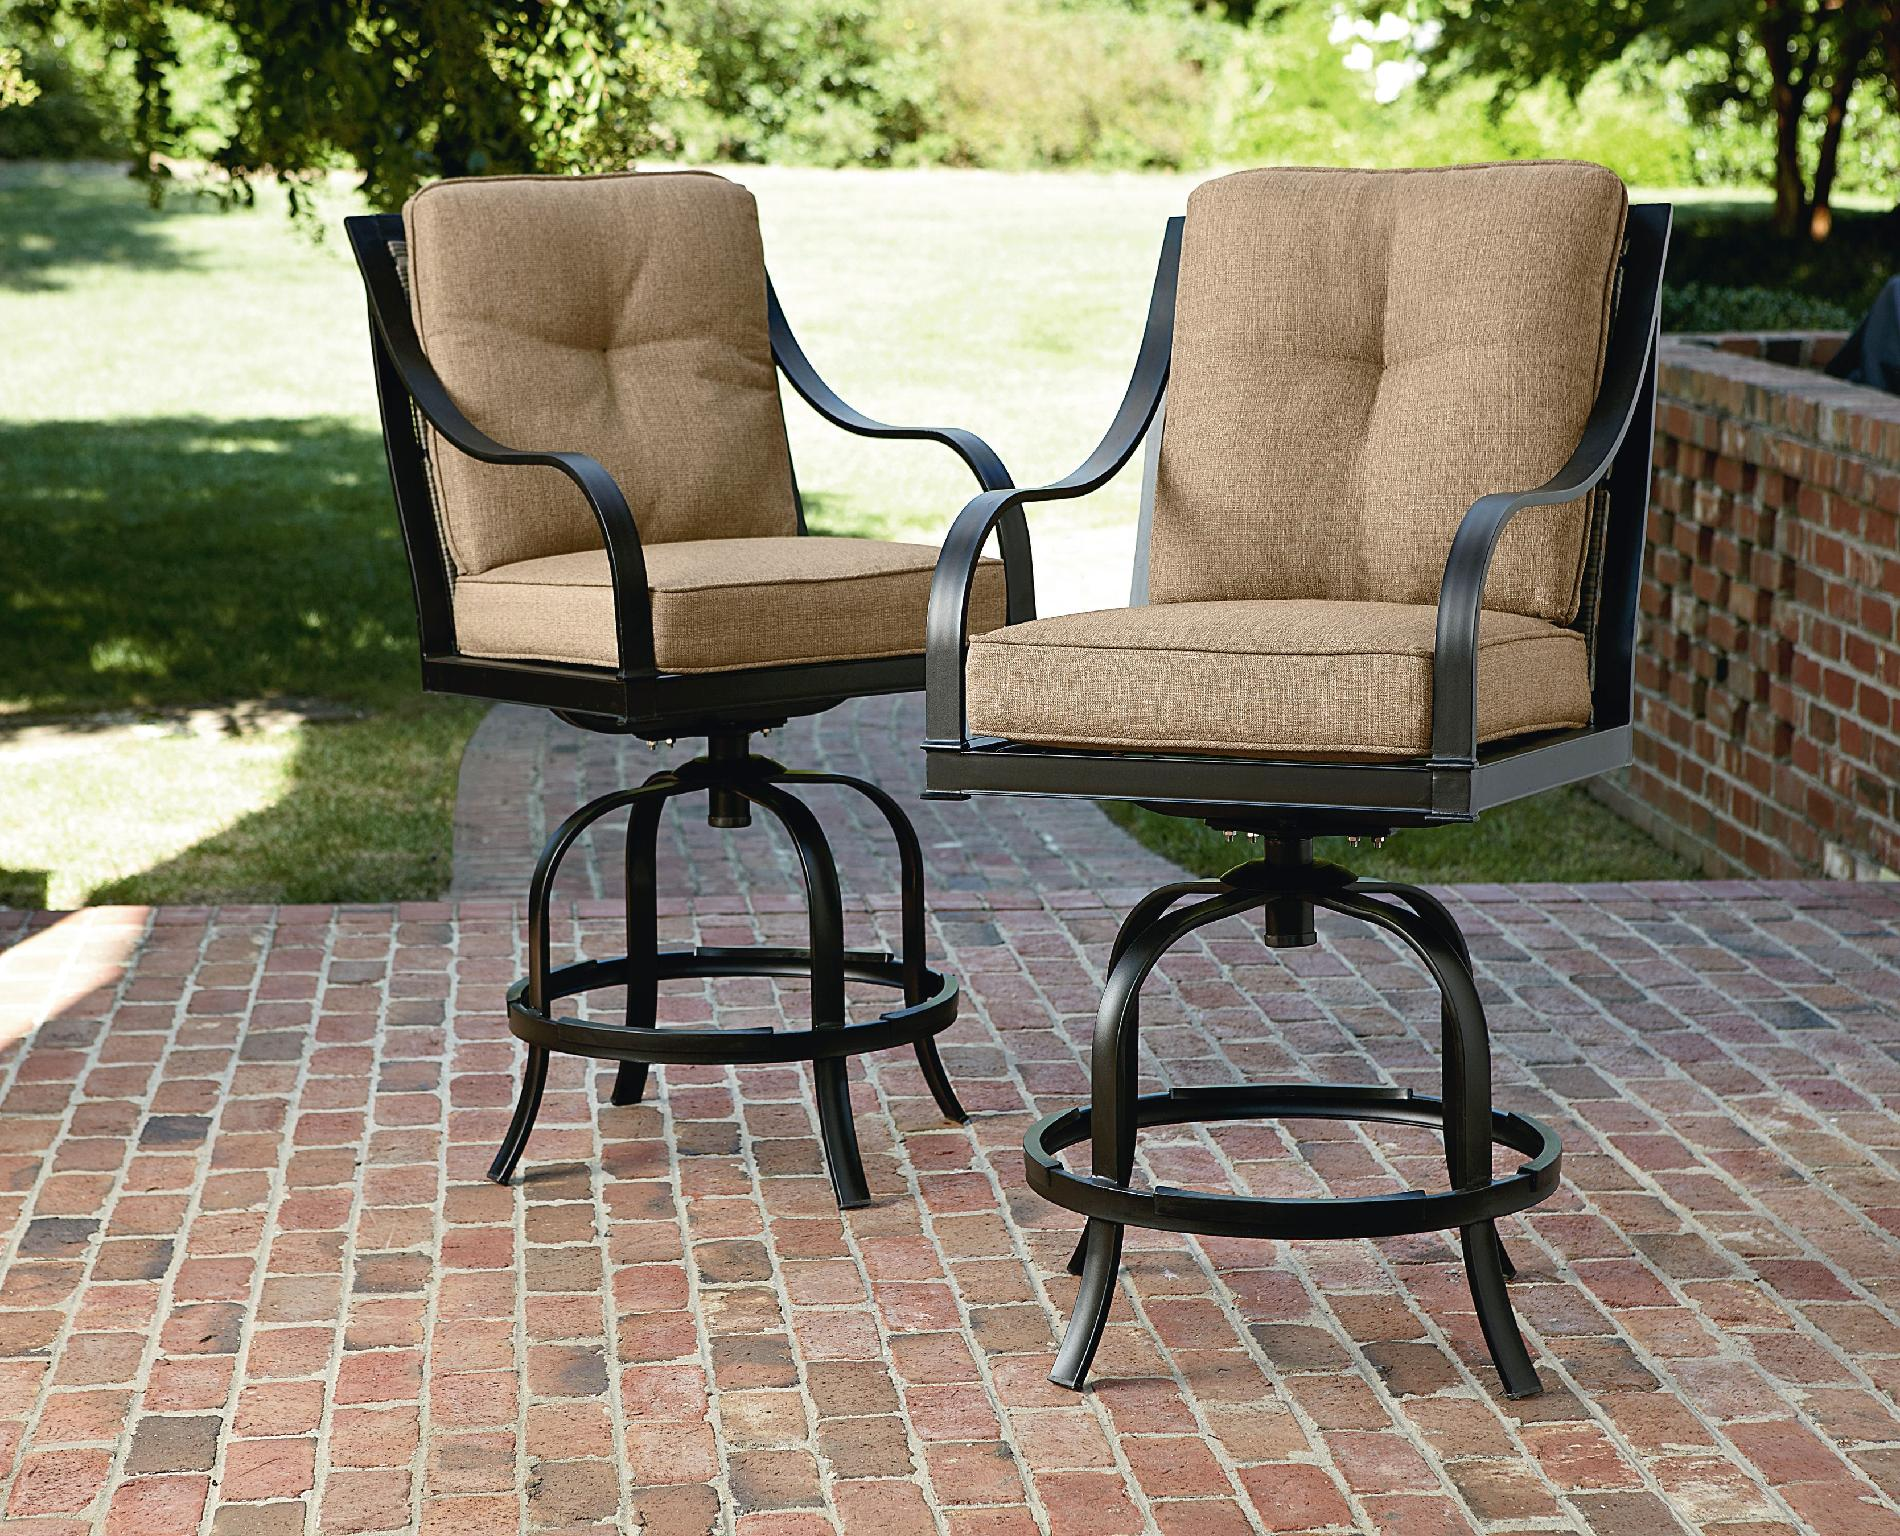 La-boy Outdoor Charlotte 2pk Patio Bar Stools